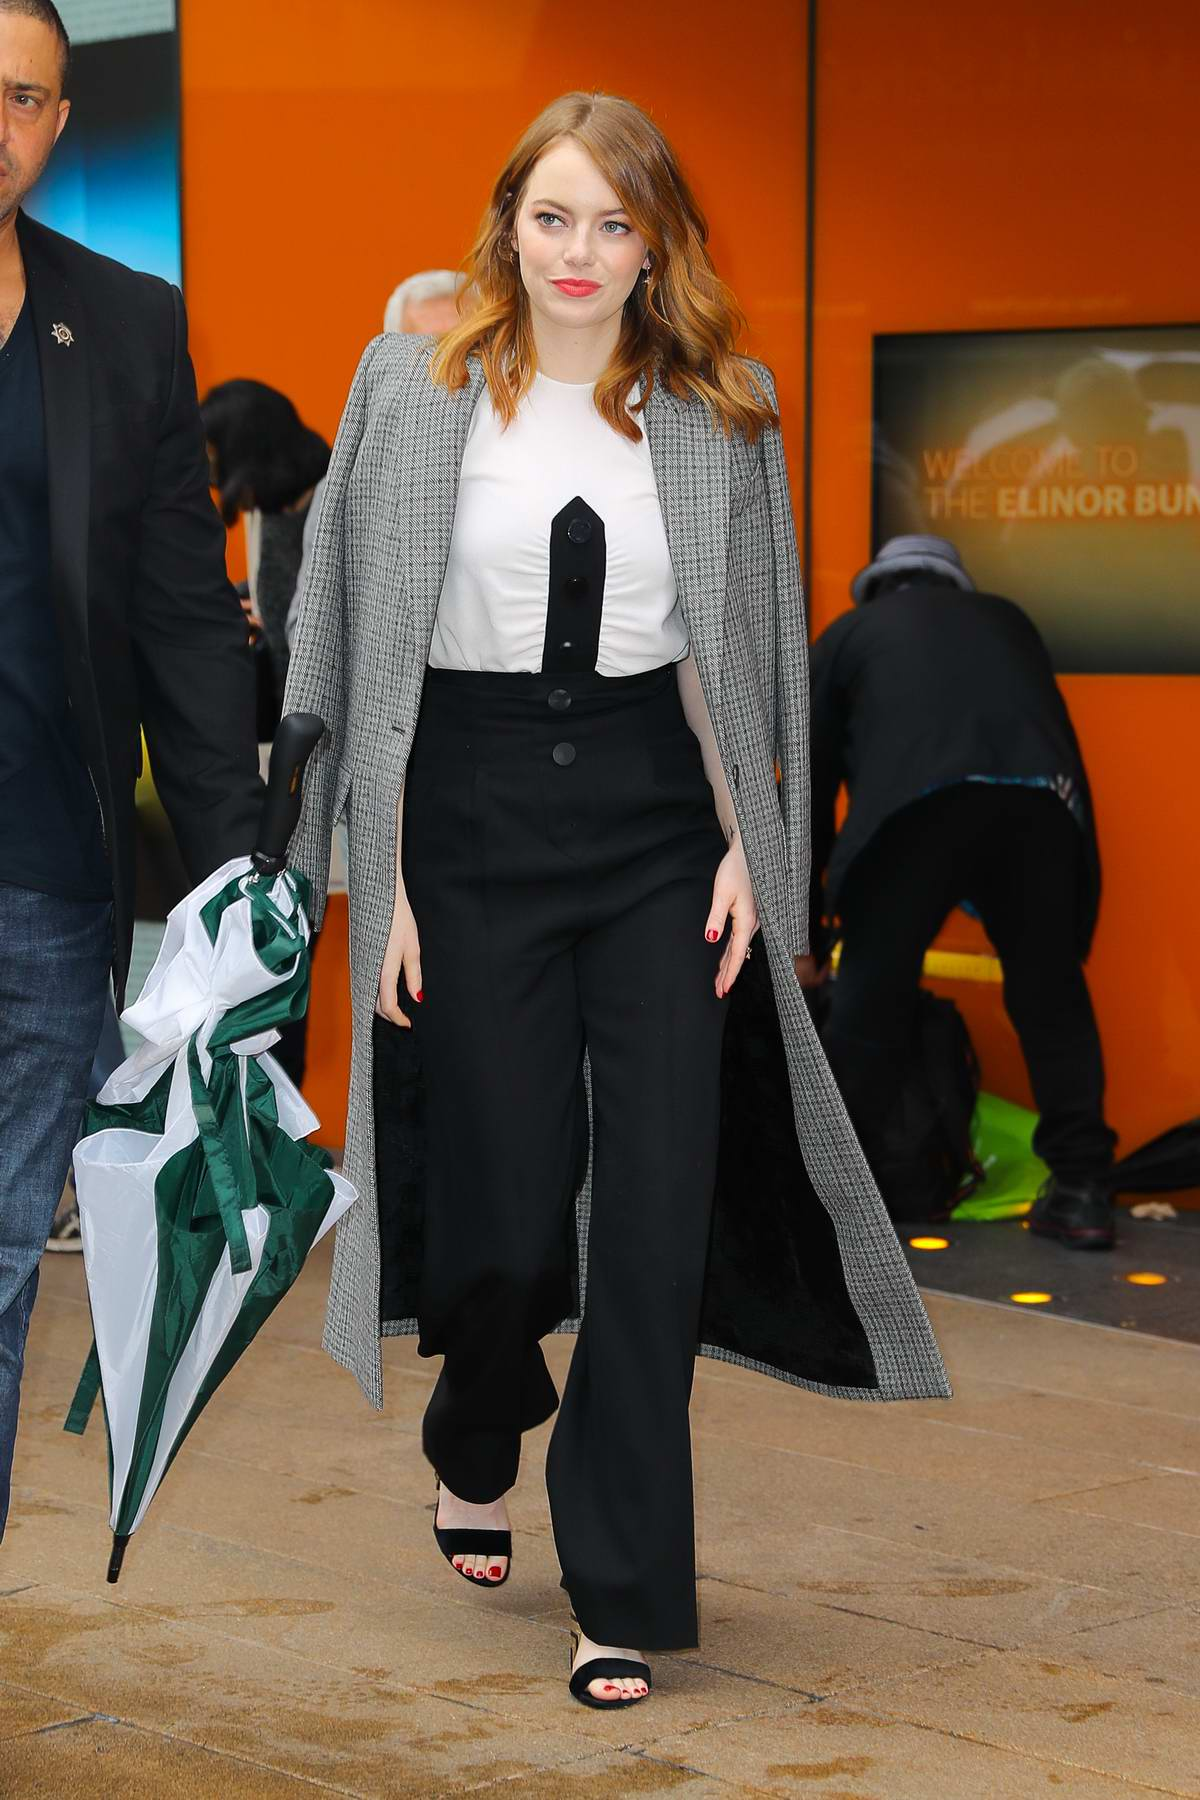 Emma Stone seen wearing a white top with black trousers with a grey coat as she leaves Lincoln Center in New York City